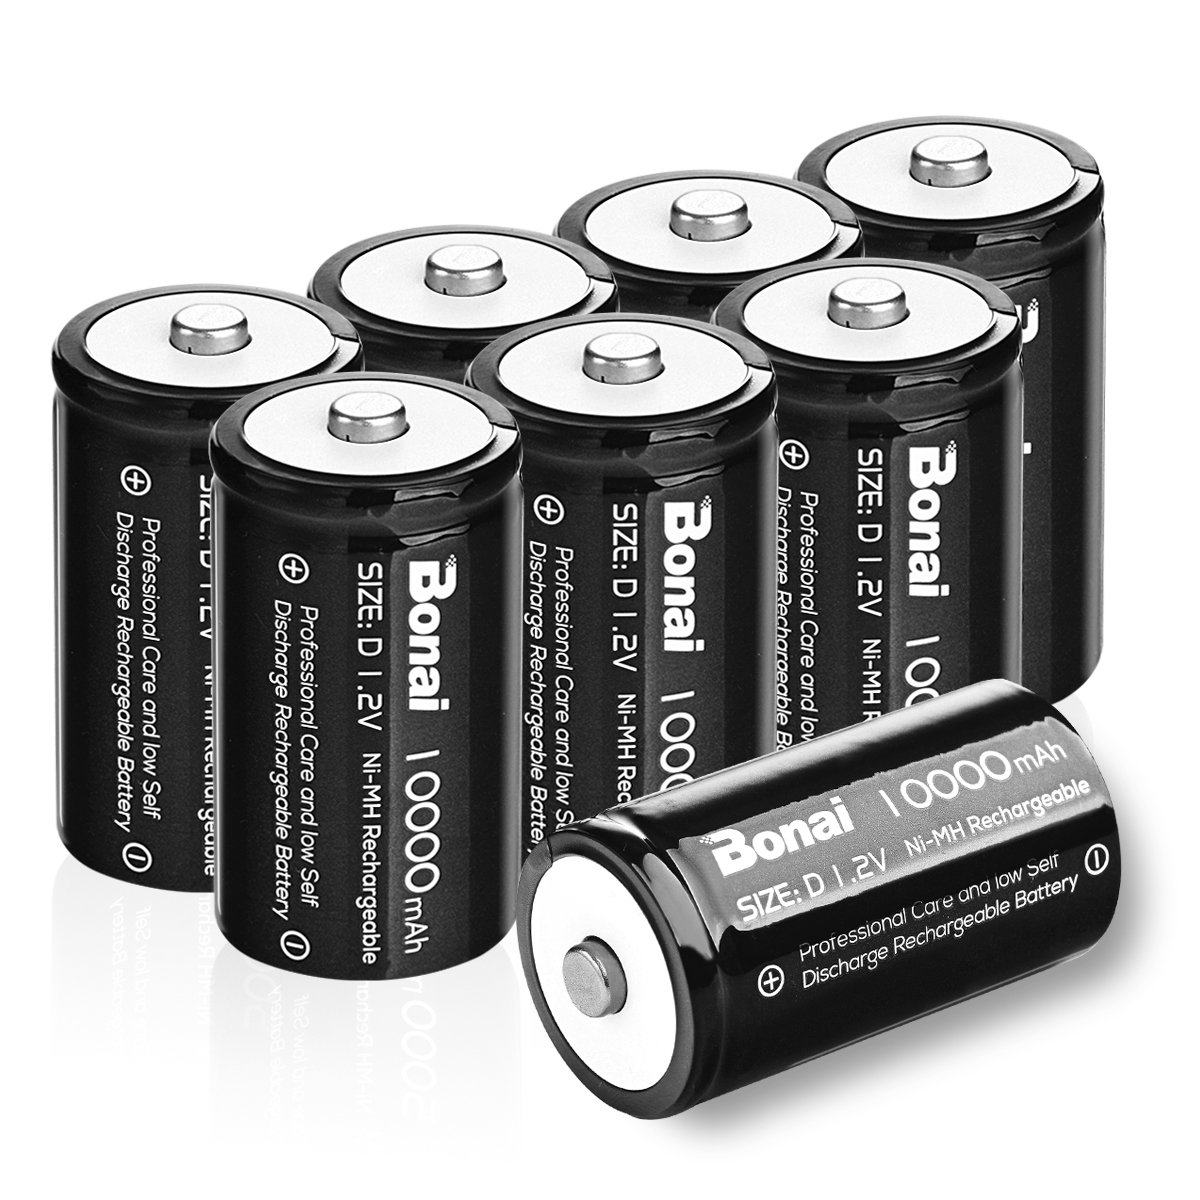 BONAI 8 Pack 10,000mAh D Rechargeable Batteries 1.2V Ni-MH High Capacity High Rate D Size Battery